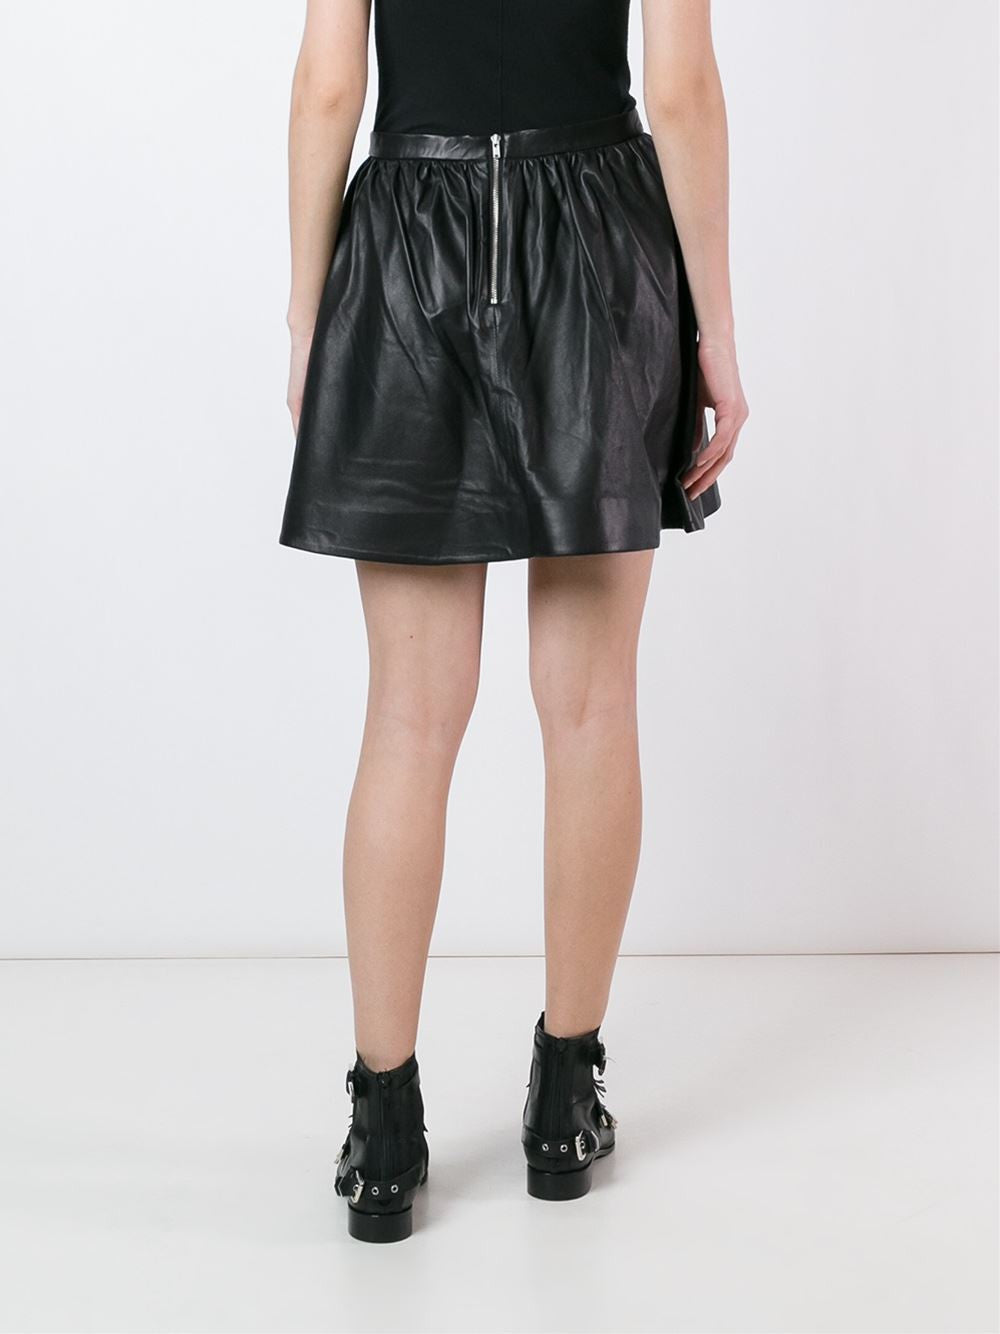 Lamb Leather Skirt | GLODY 16SWP31